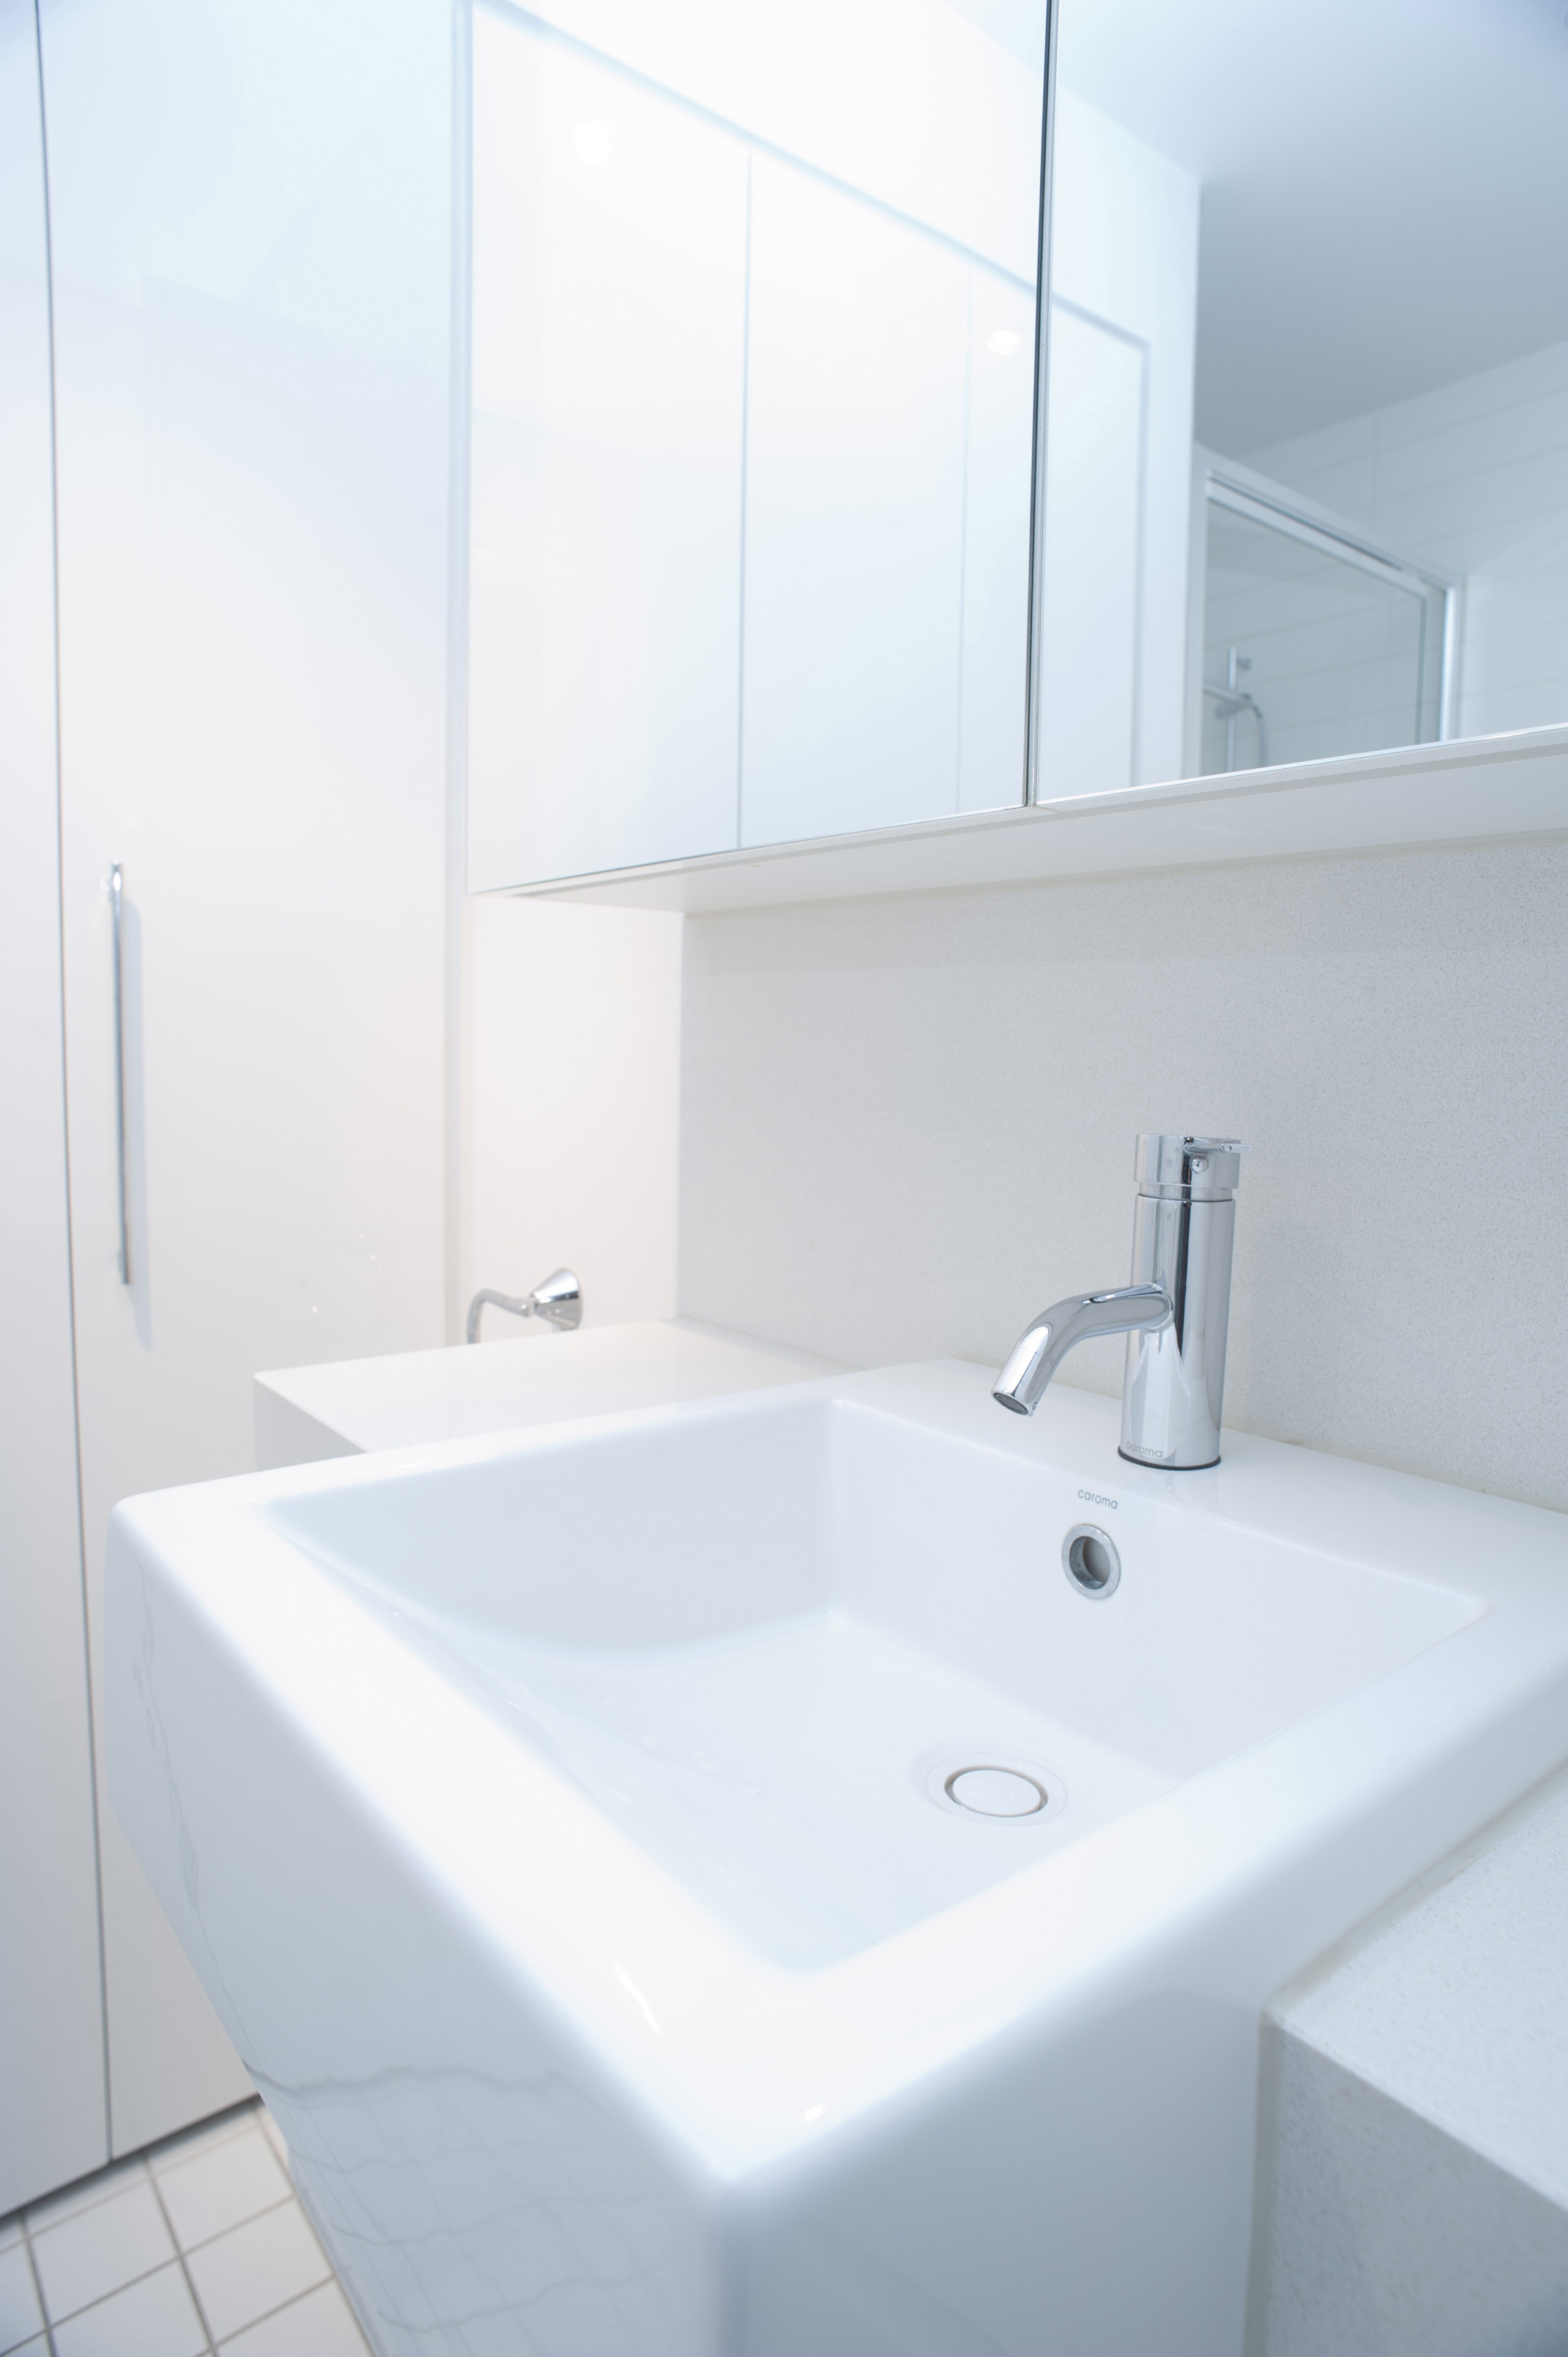 Modern rectangular white hand basin with a mixer tap in a white bathroom interior with mirror and cabinets